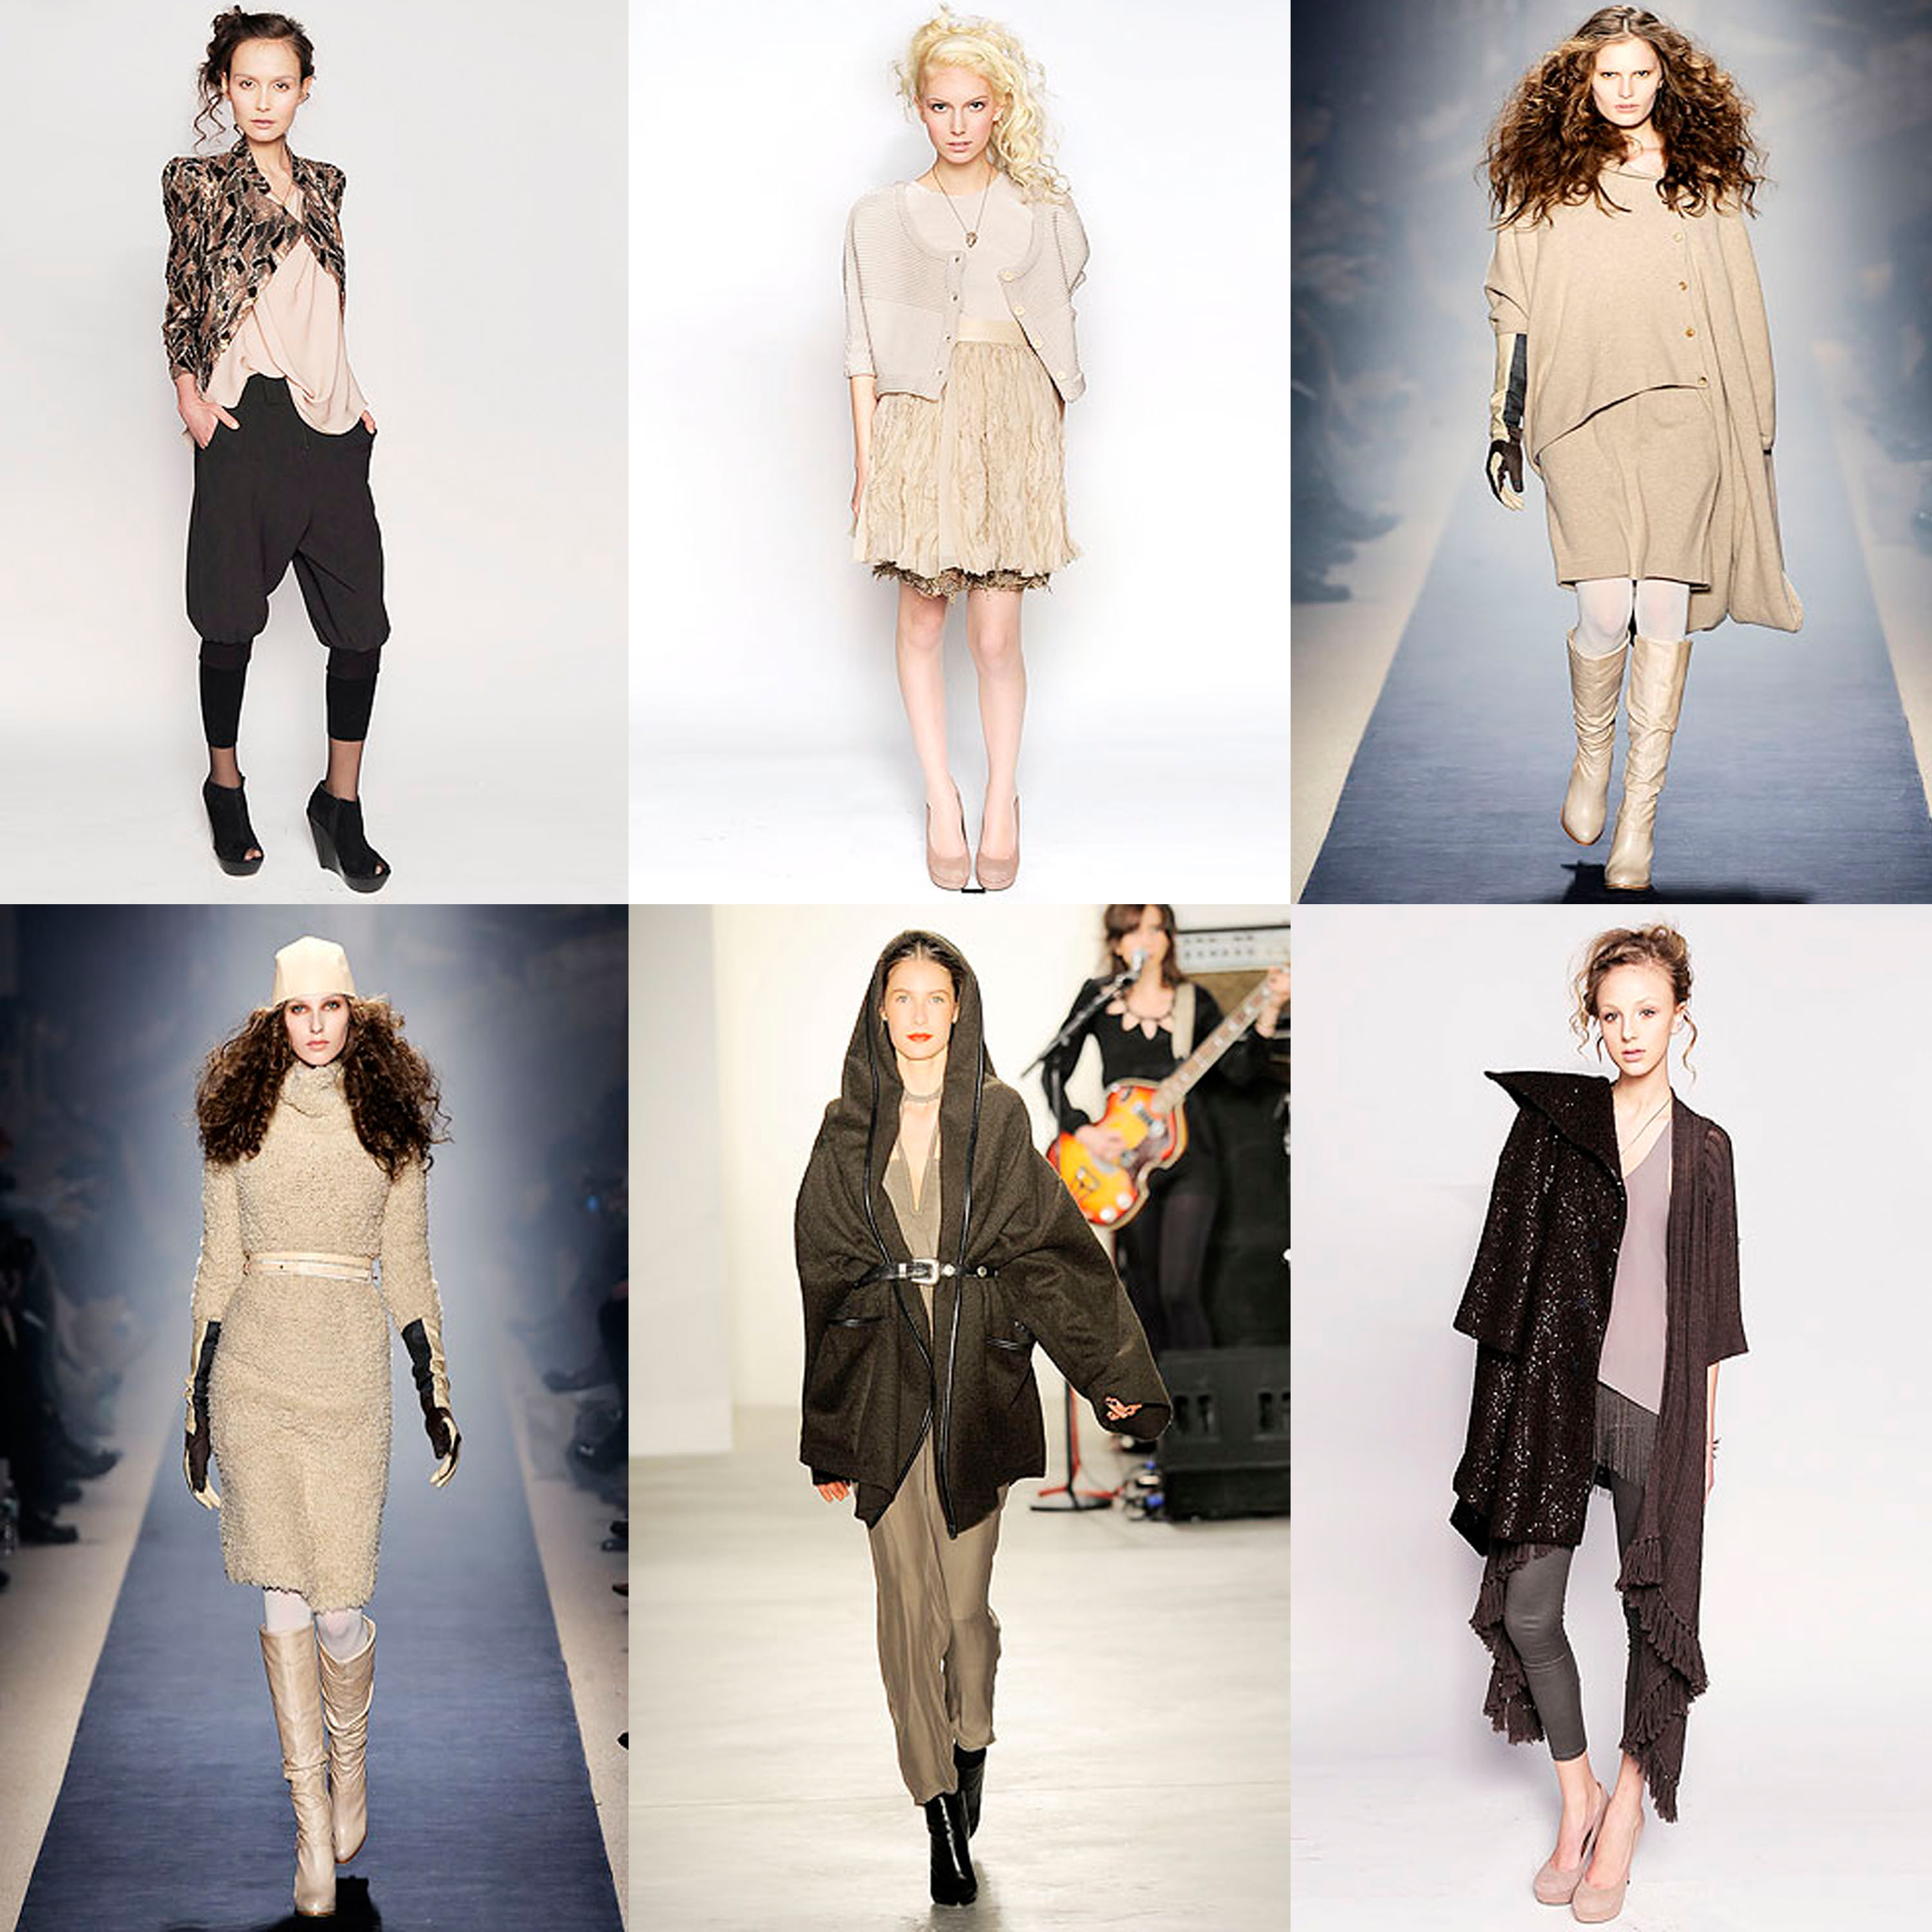 Fall 2010 Trends – Soft Tones in Creams, Pinks, and Browns